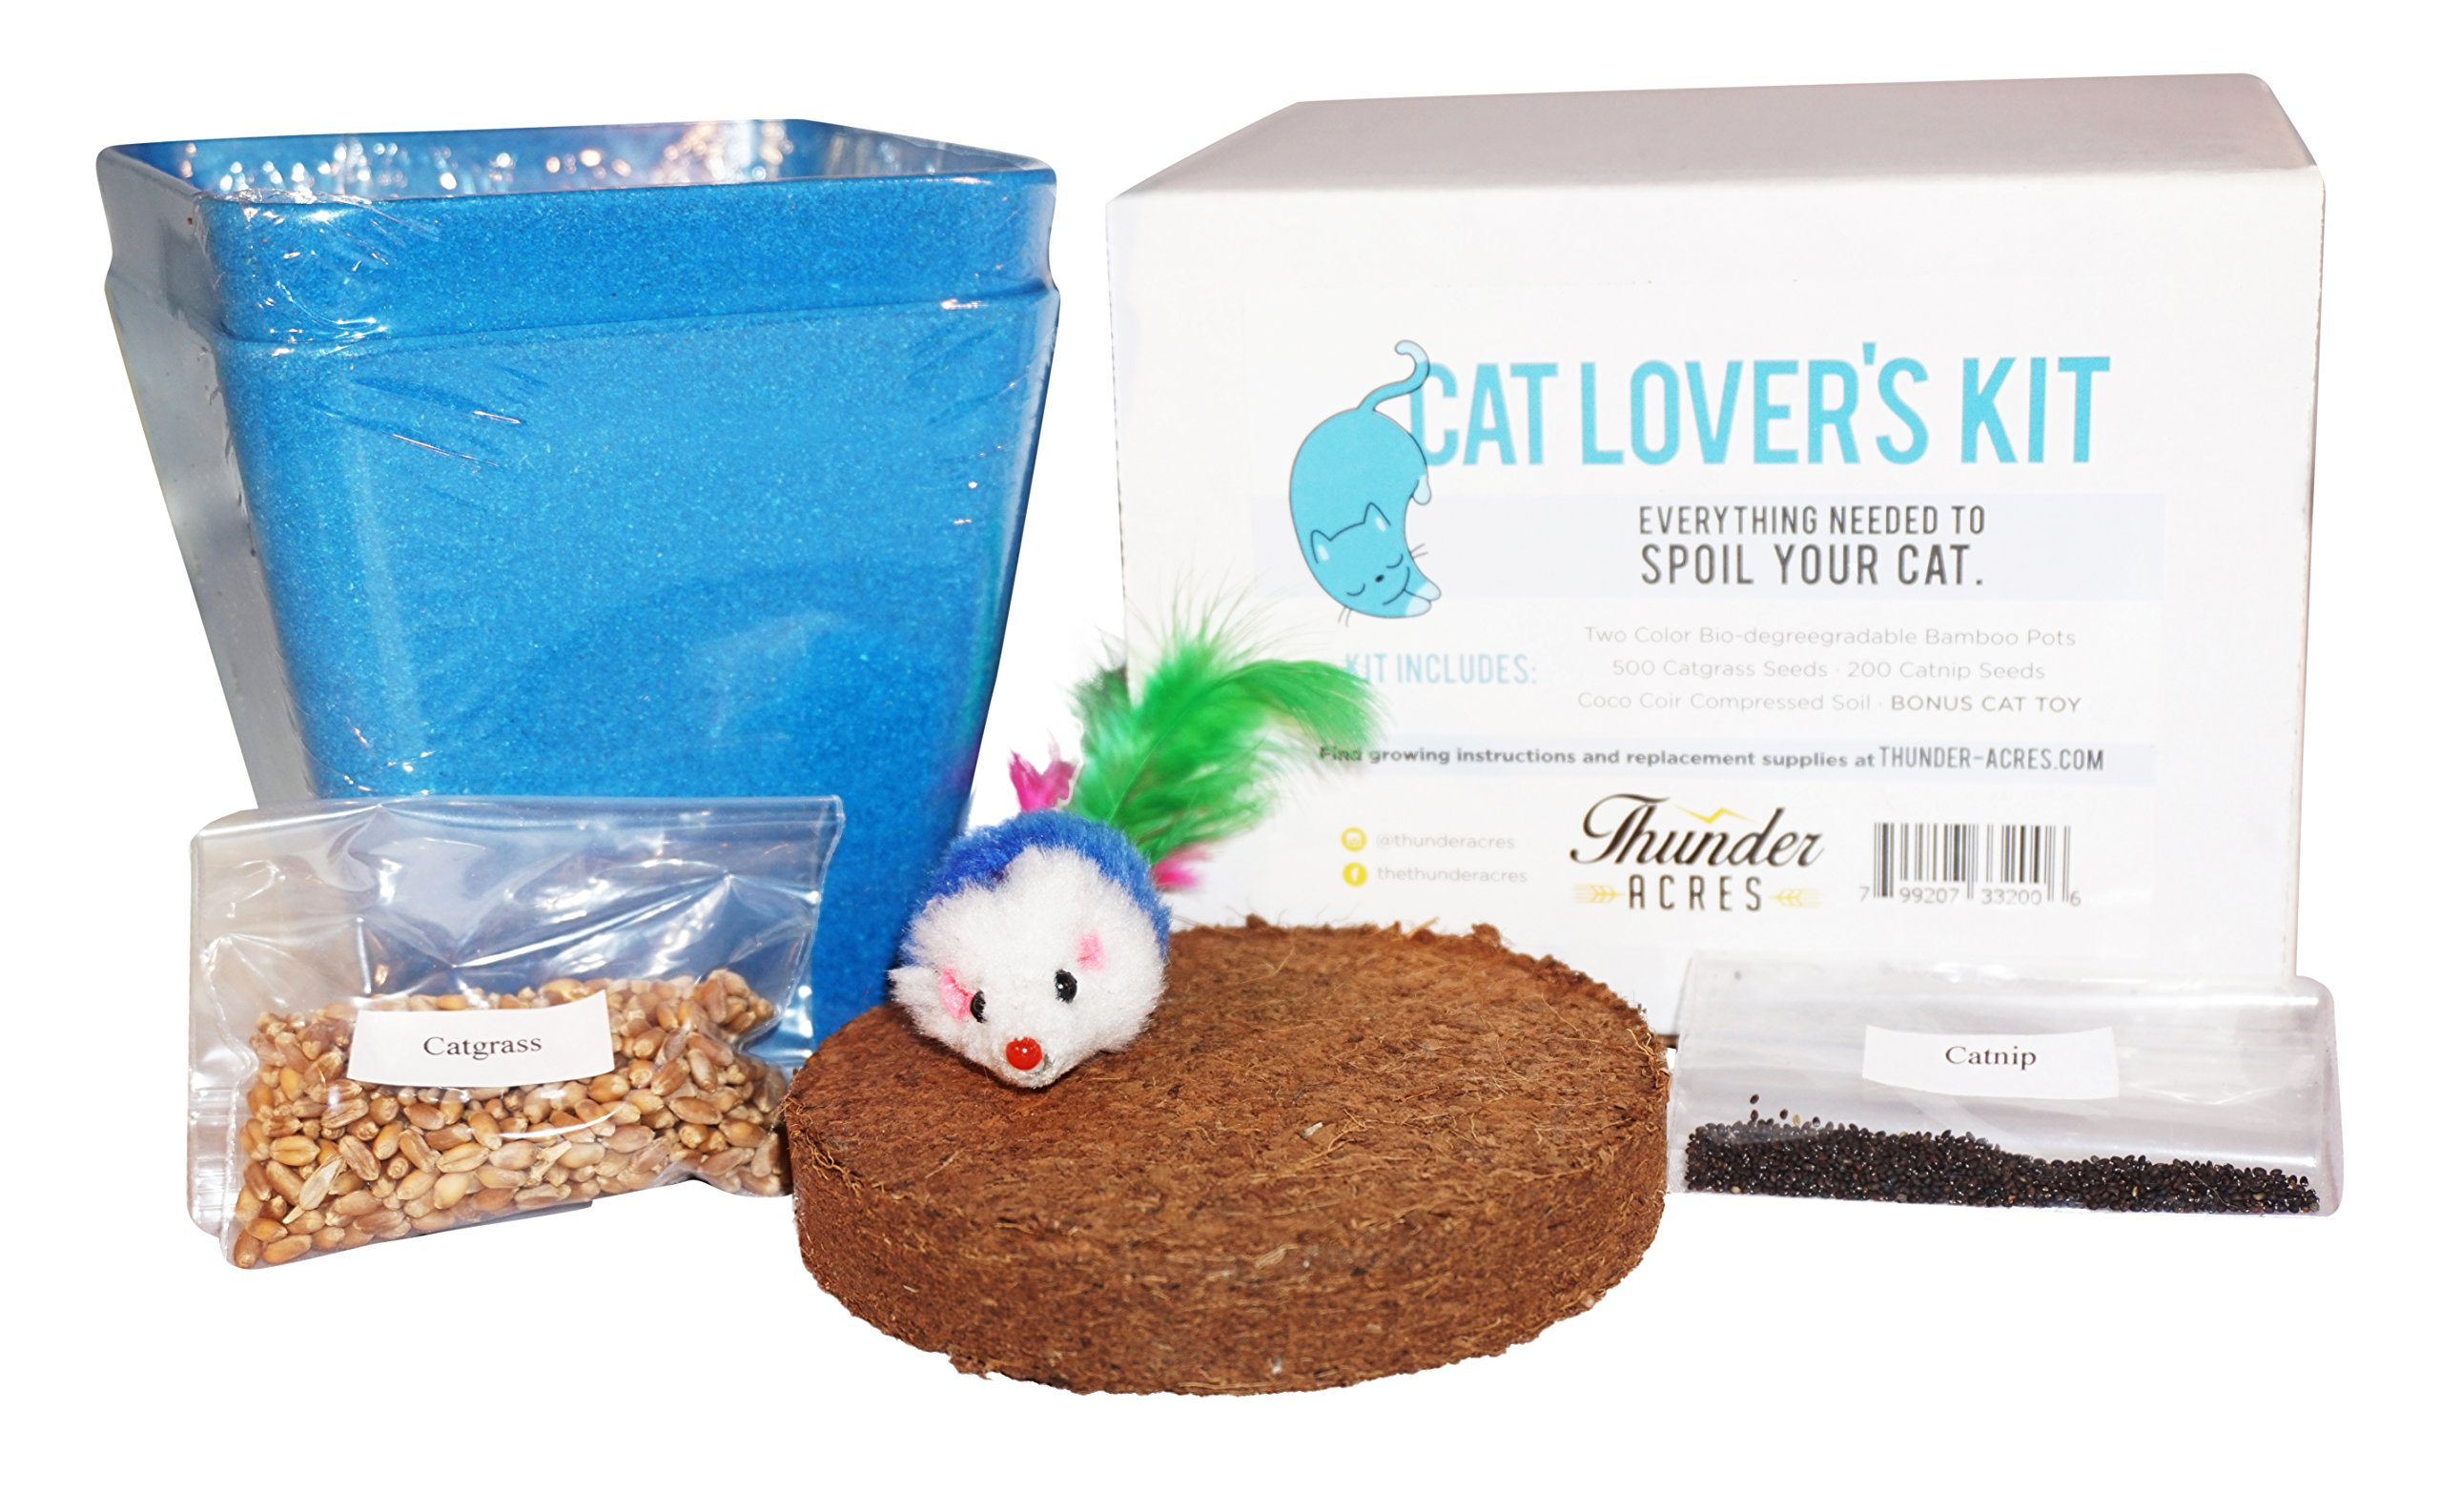 Cat Lover's Kit, Catgrass seed, Catnip seed, Coco Coir, with bonus Cat Toy (Blue)